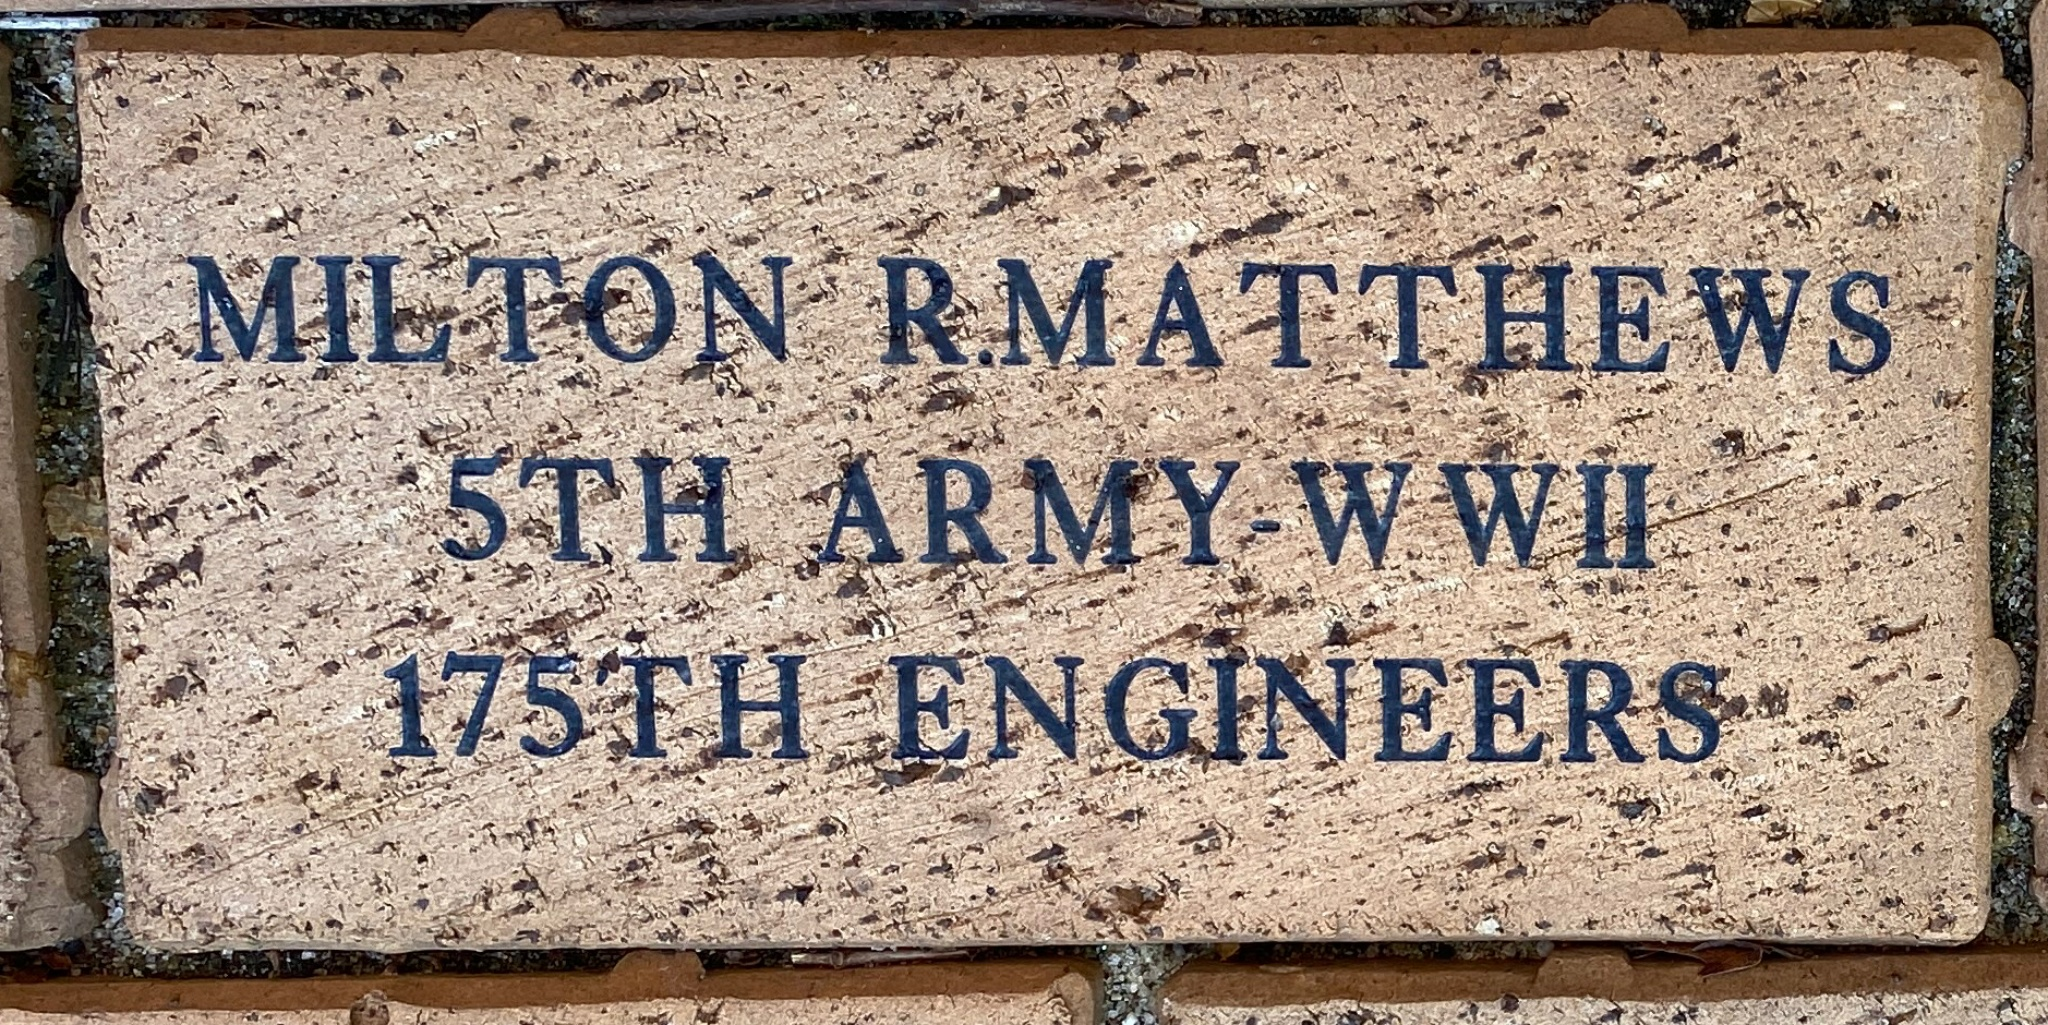 MILTON R.MATTHEWS 5TH ARMY-WWII 175TH ENGINEERS